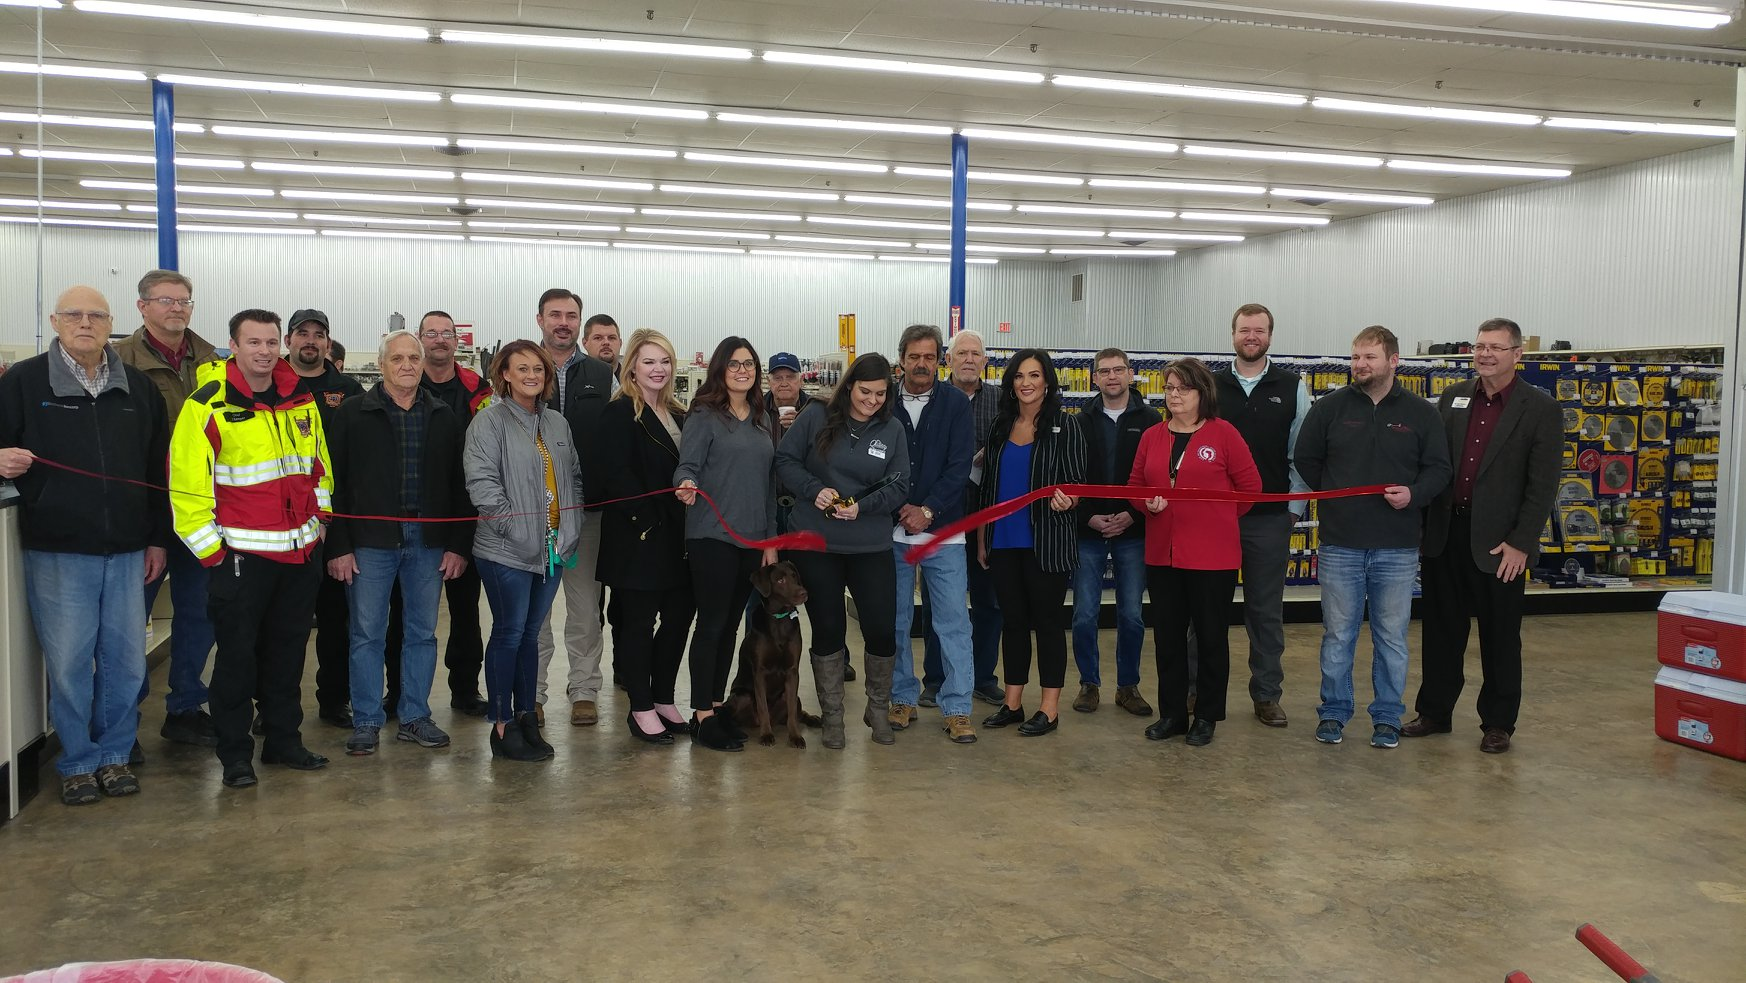 Quality Farm Supply Ribbon Cutting